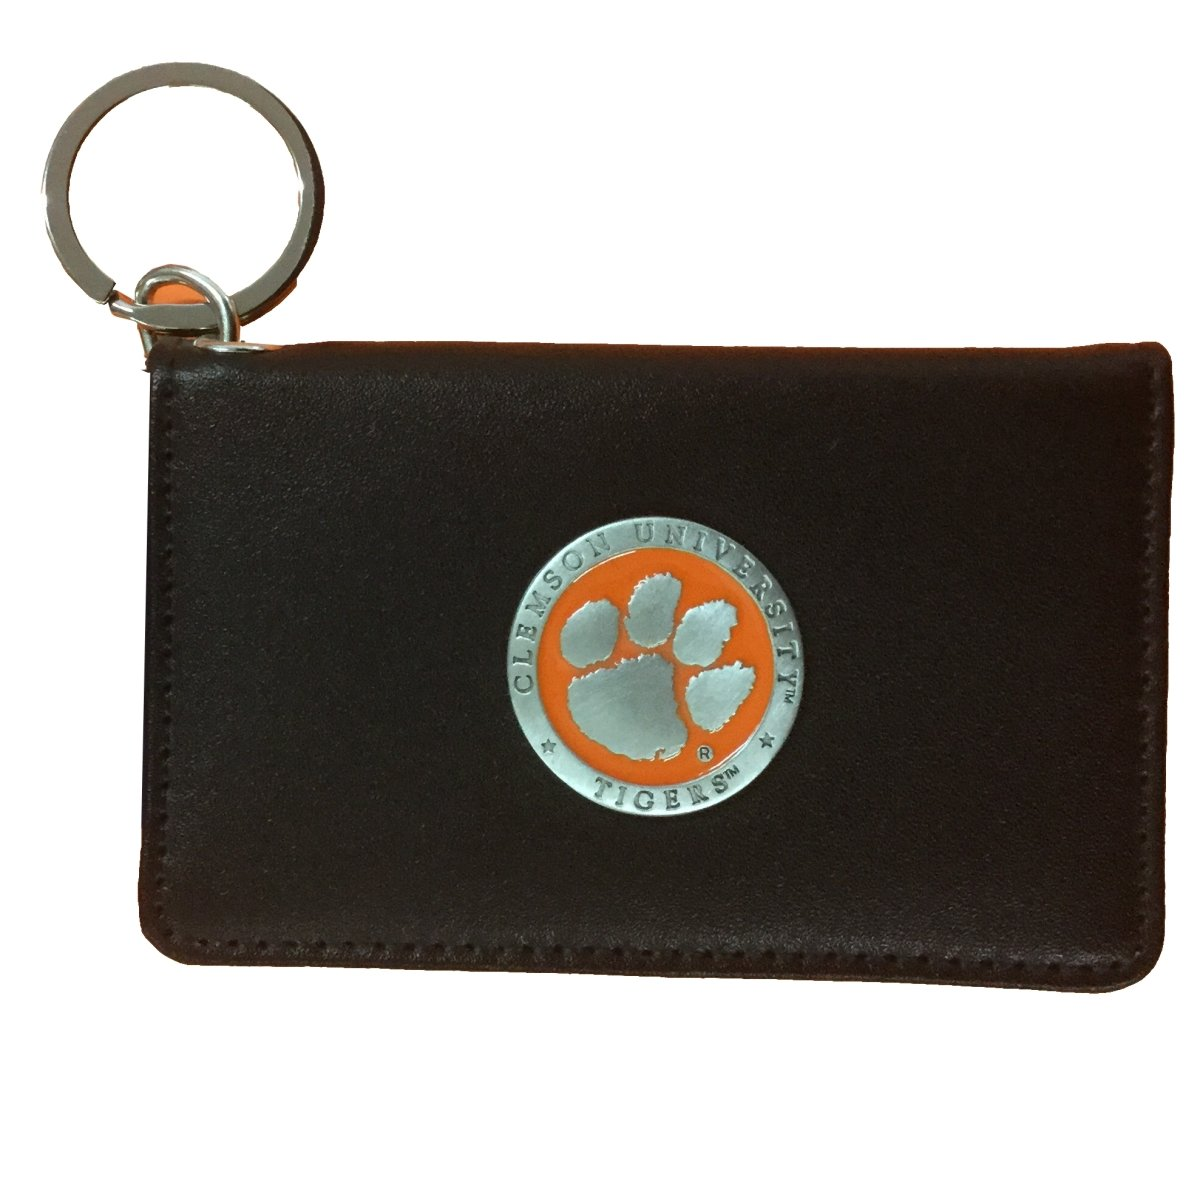 Keychain Wallet With Pewter Emblem - Mr. Knickerbocker